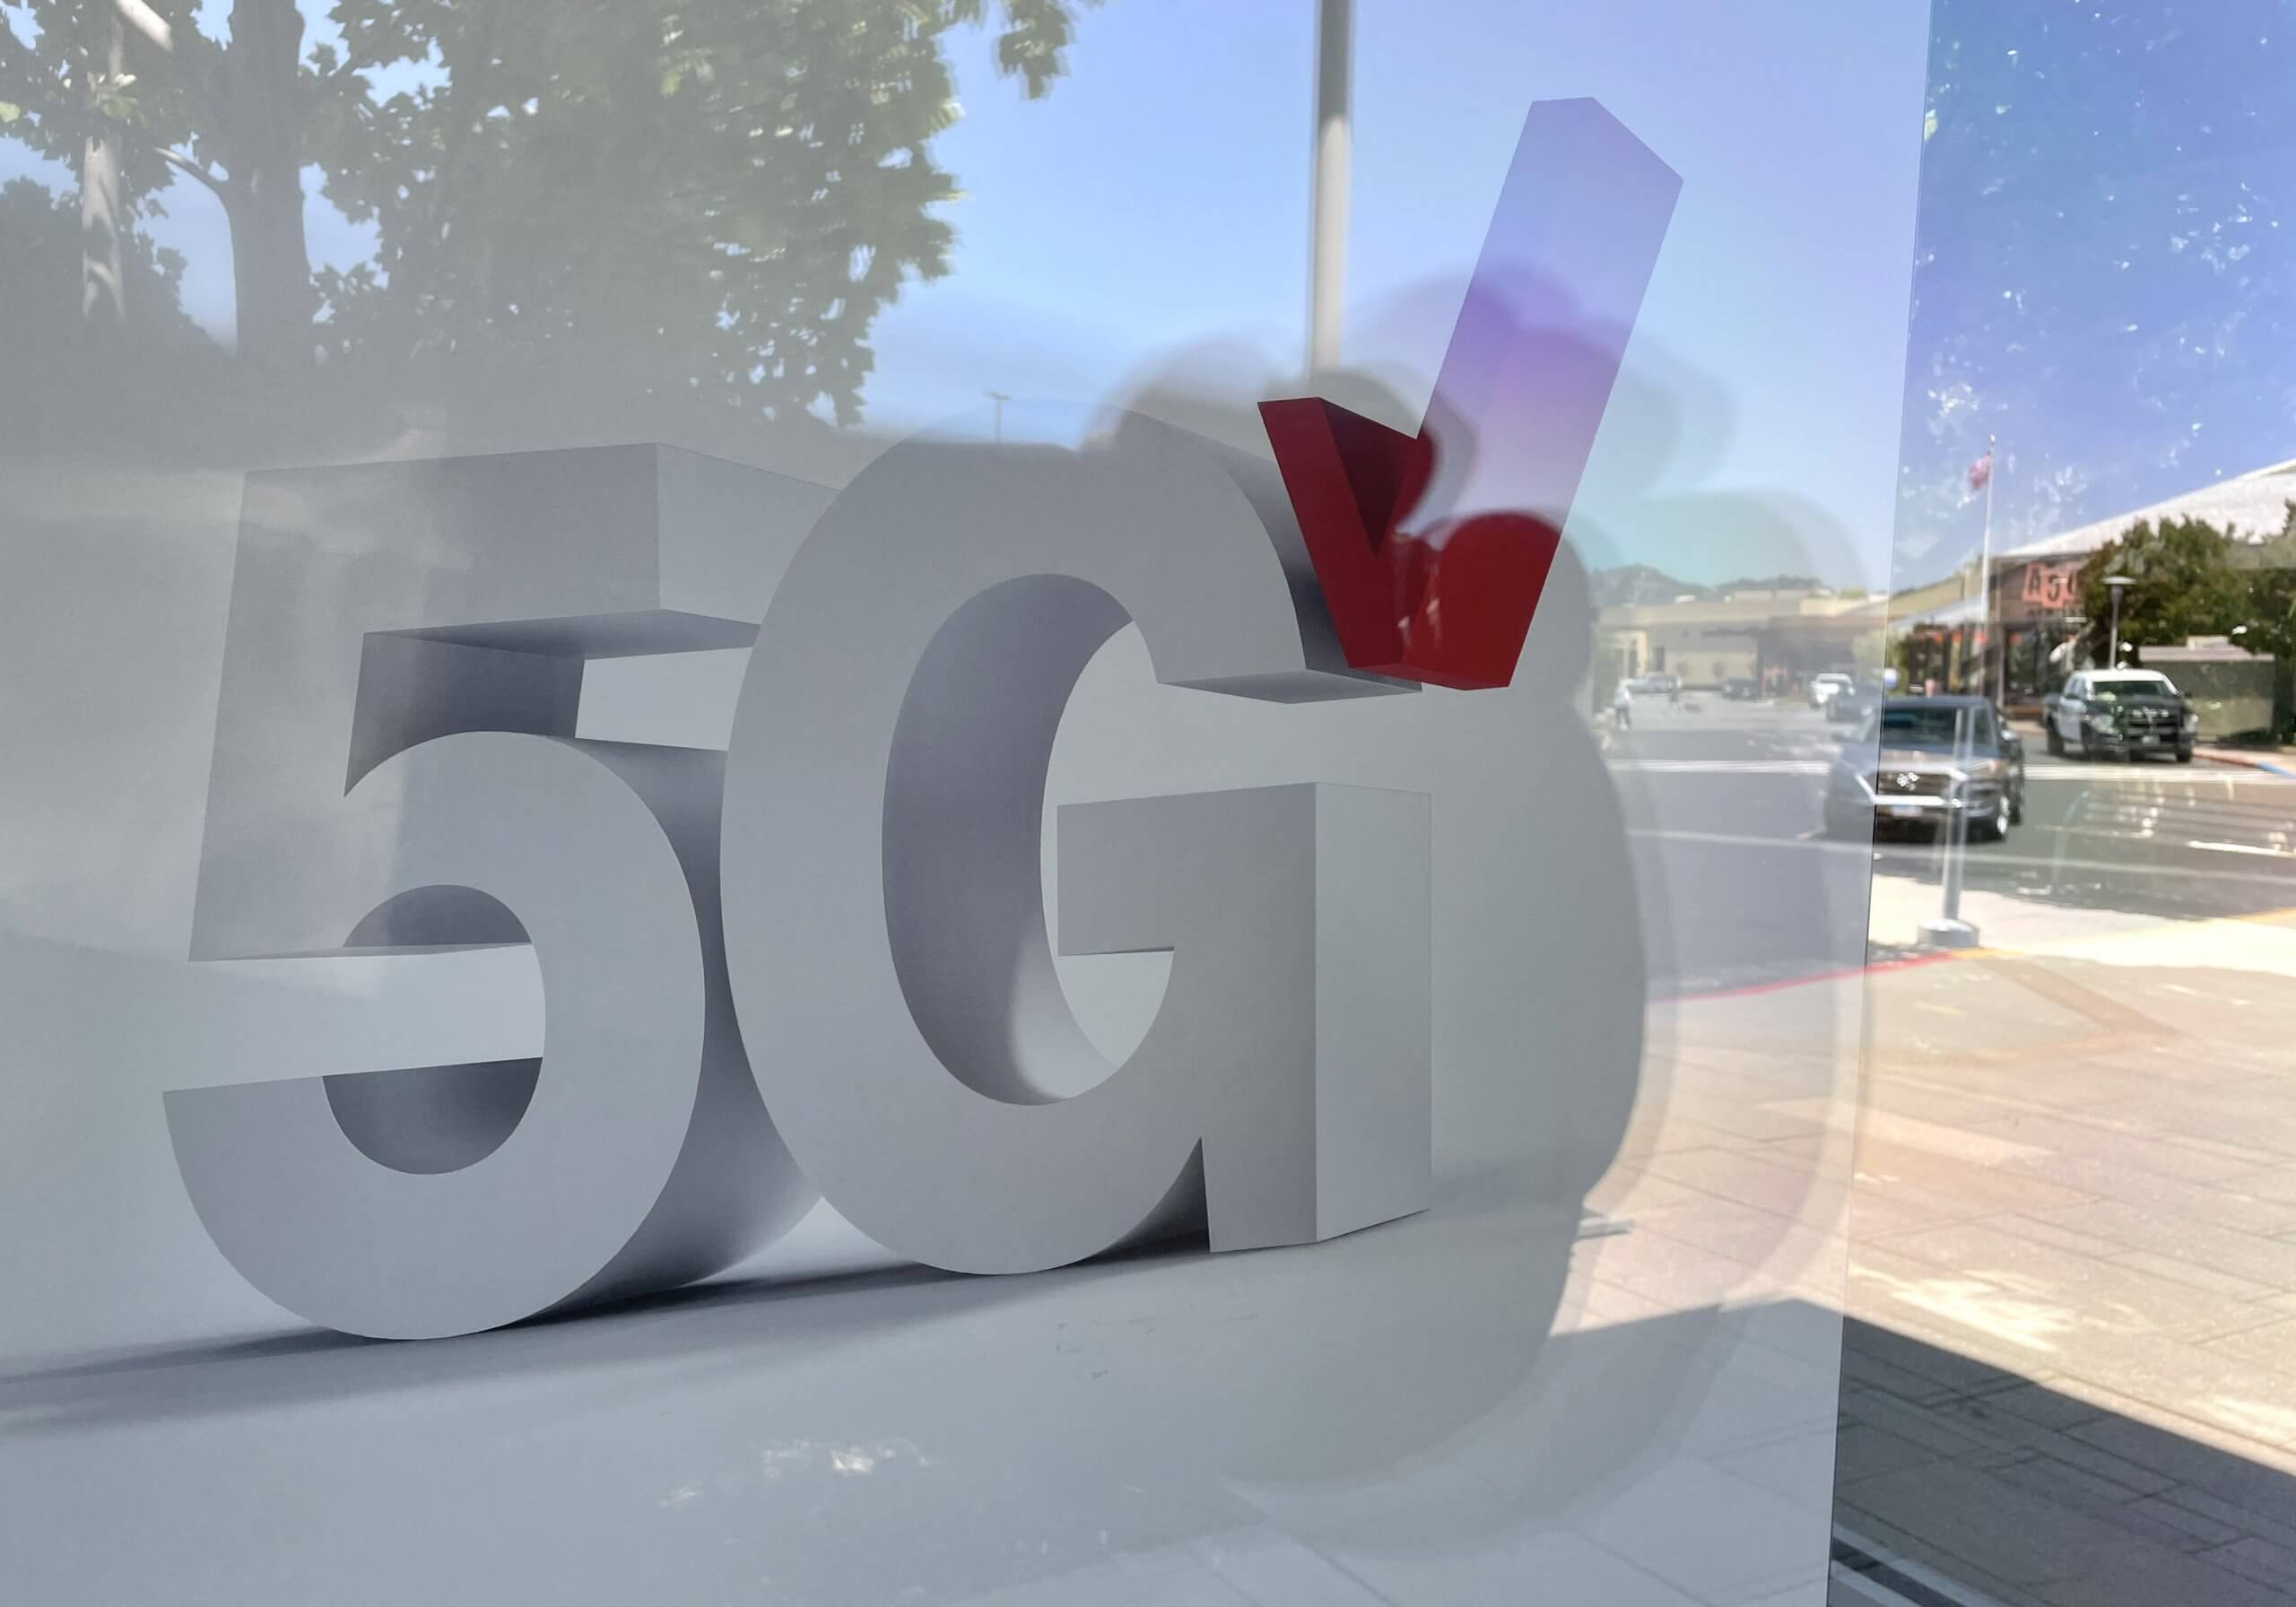 The convergence of 5G and IoT is expected to revolutionize industries